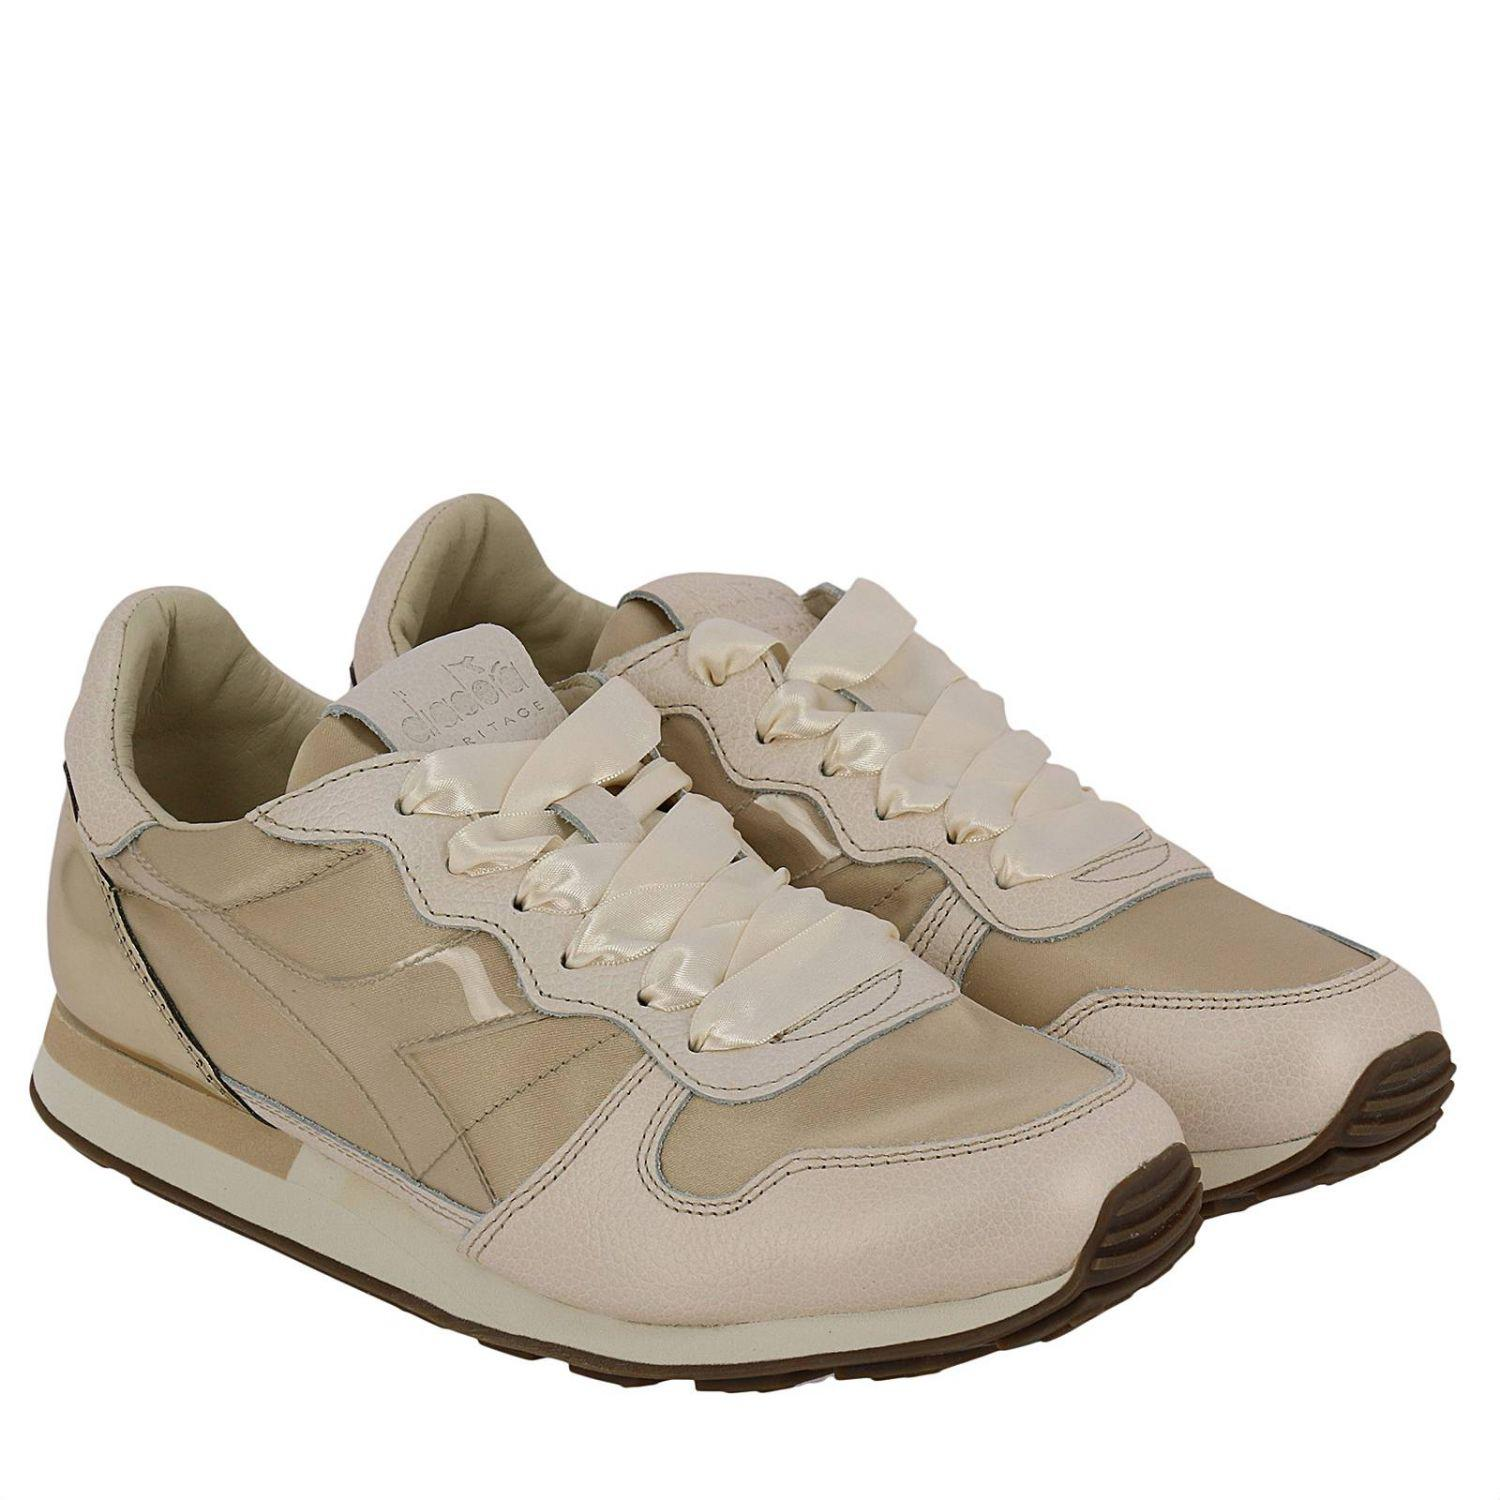 Diadora Leather Sneakers Shoes Women in Gold (Metallic)